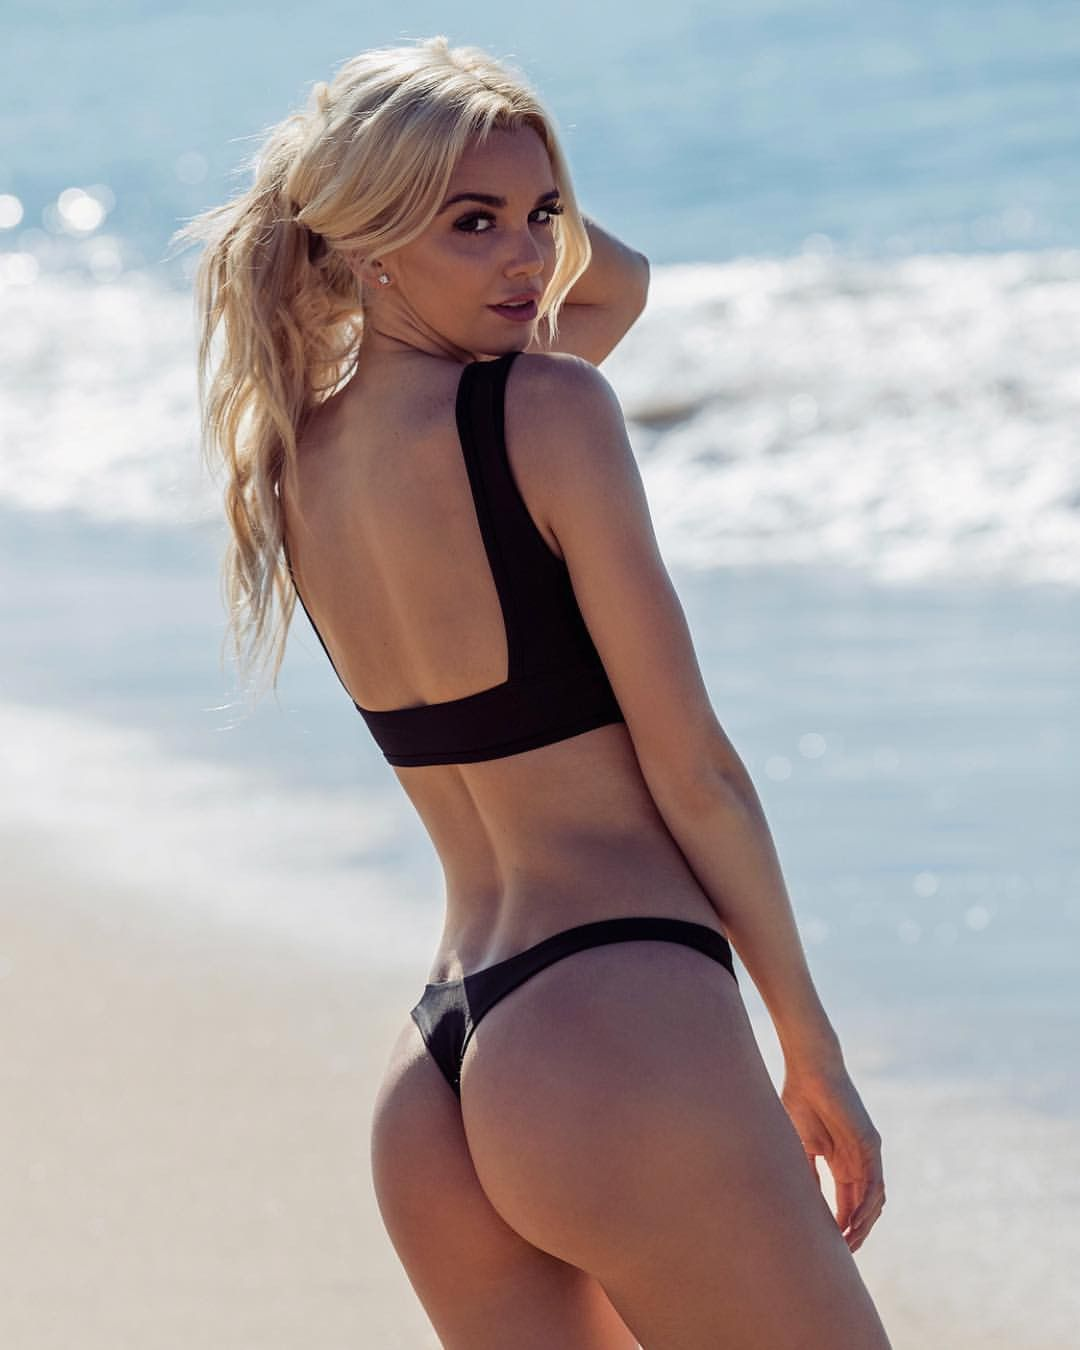 Celebrites Caitlin Arnett nude photos 2019